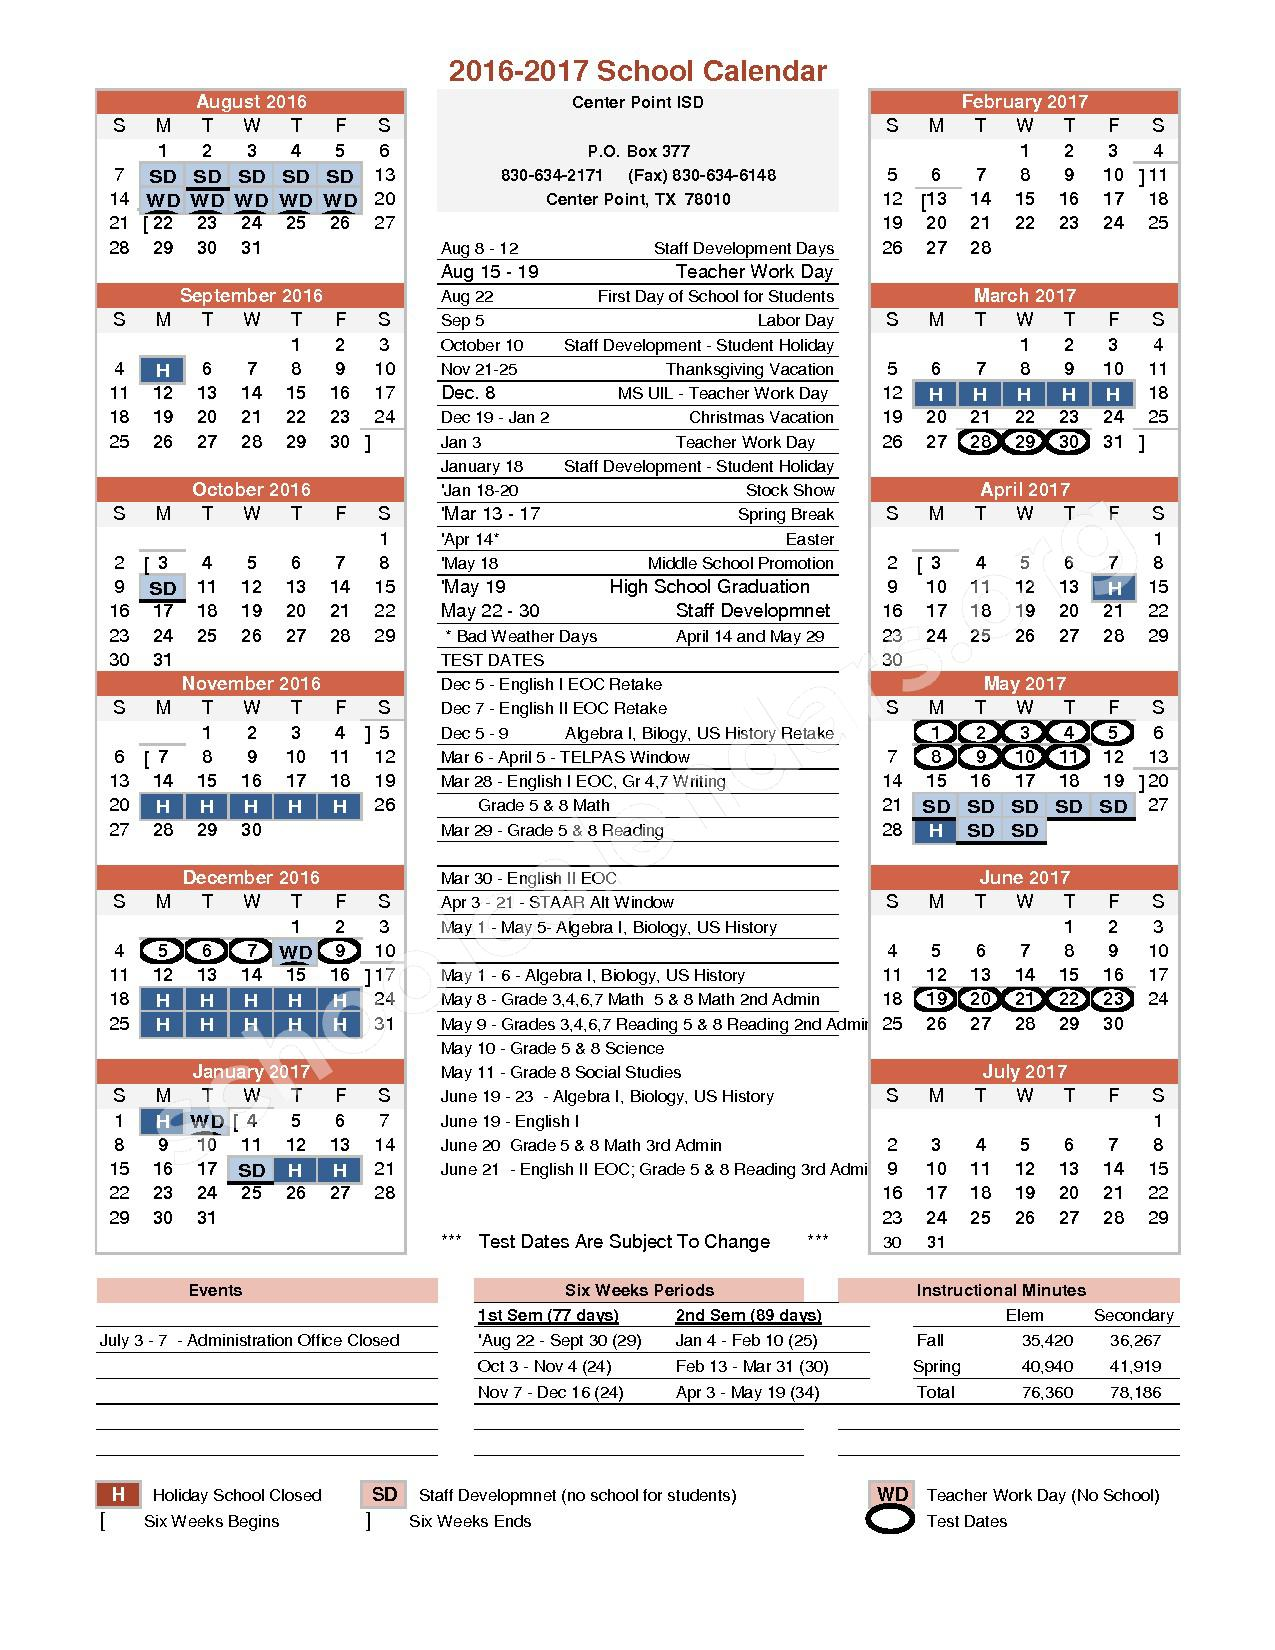 2016 - 2017 School Calendar – Center Point Independent School District – page 1